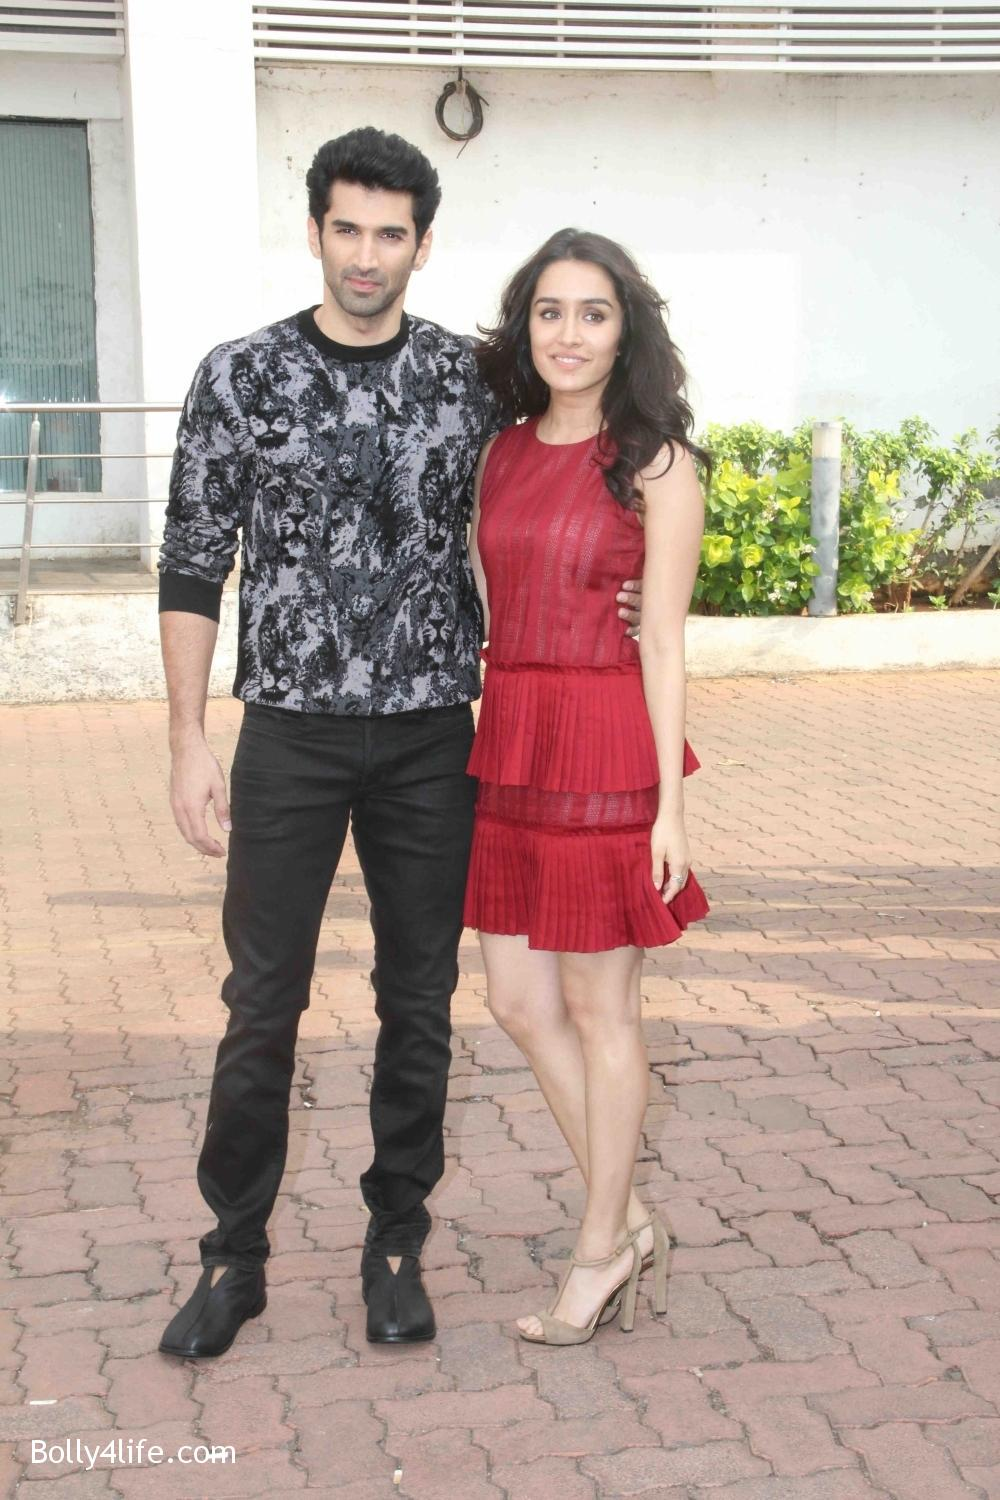 Aditya-Roy-Kapur-and-Shraddha-Kapoor-during-the-promotion-of-film-Ok-Jaanu-on-the-sets-Star-Plus-singing-reality-show-Dil-Hai-Hindustani-3.jpg